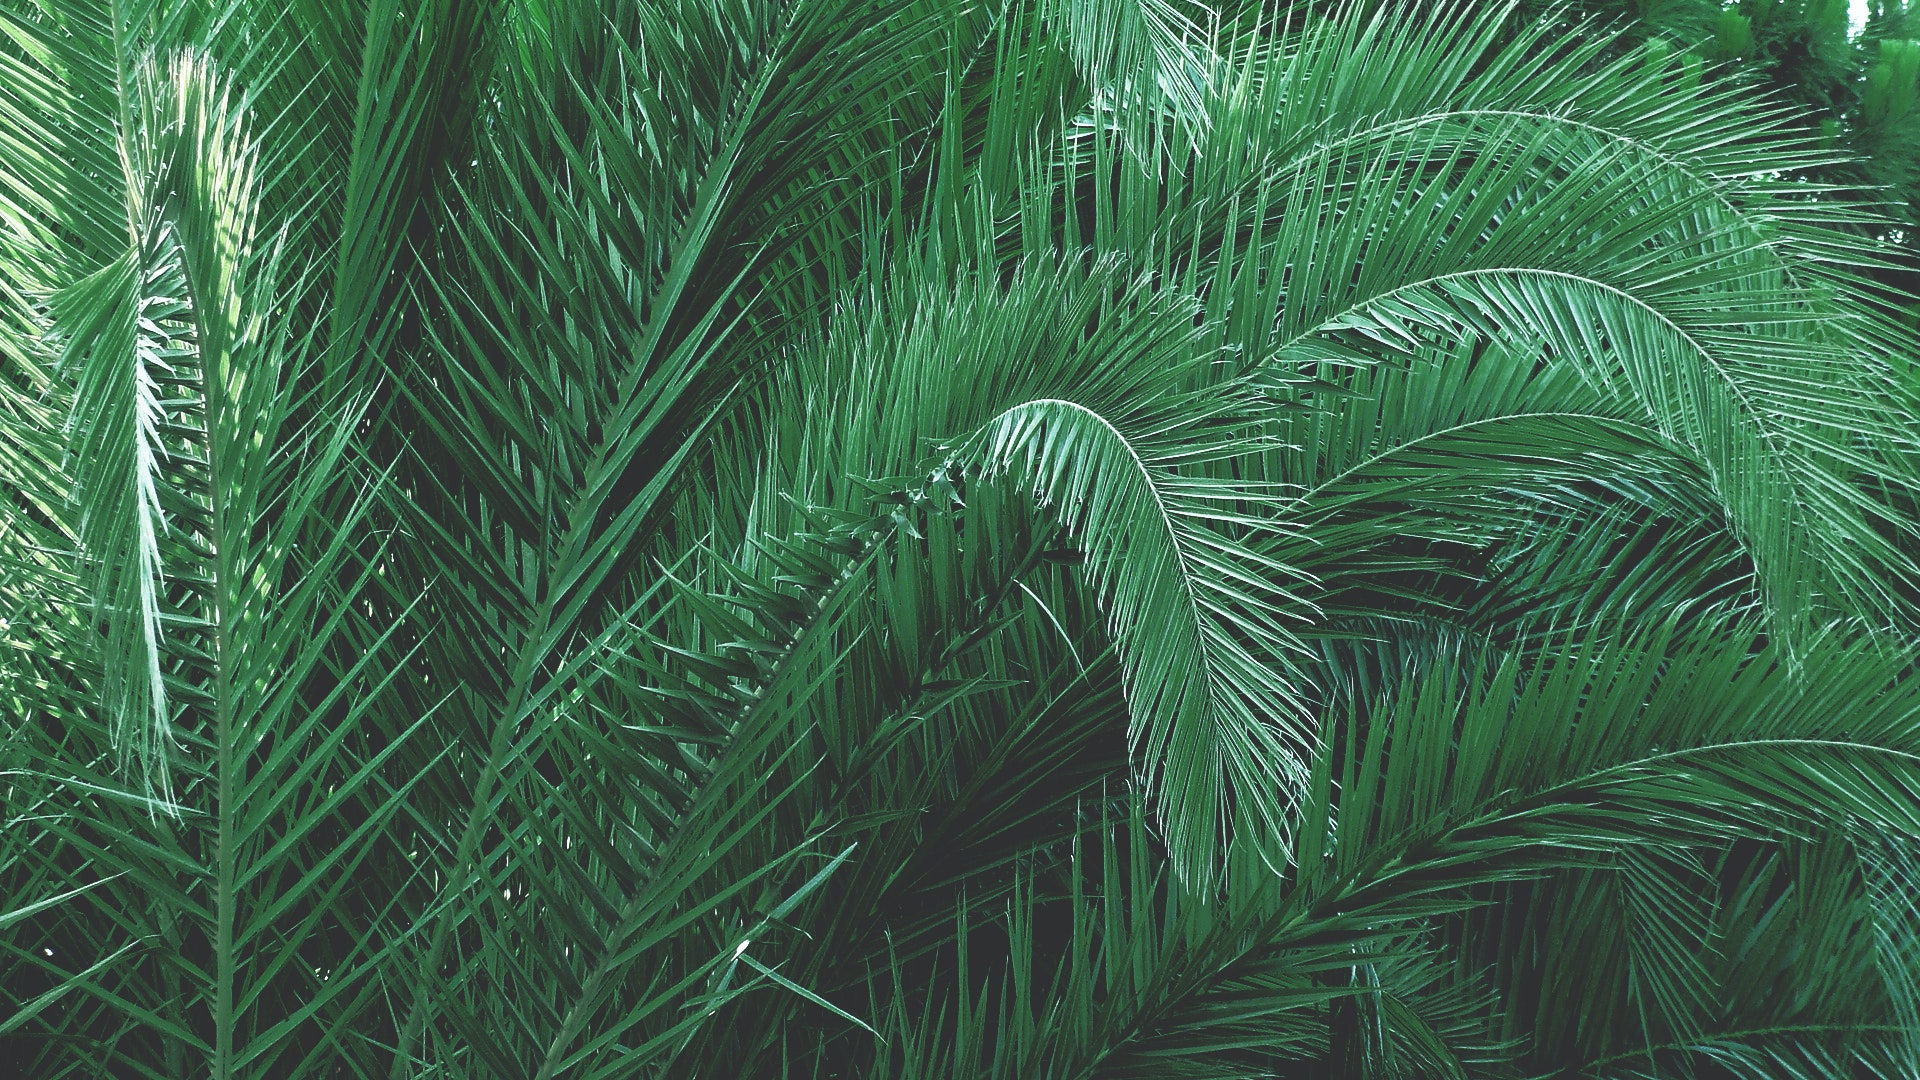 Green Aesthetic Wallpaper Iphone